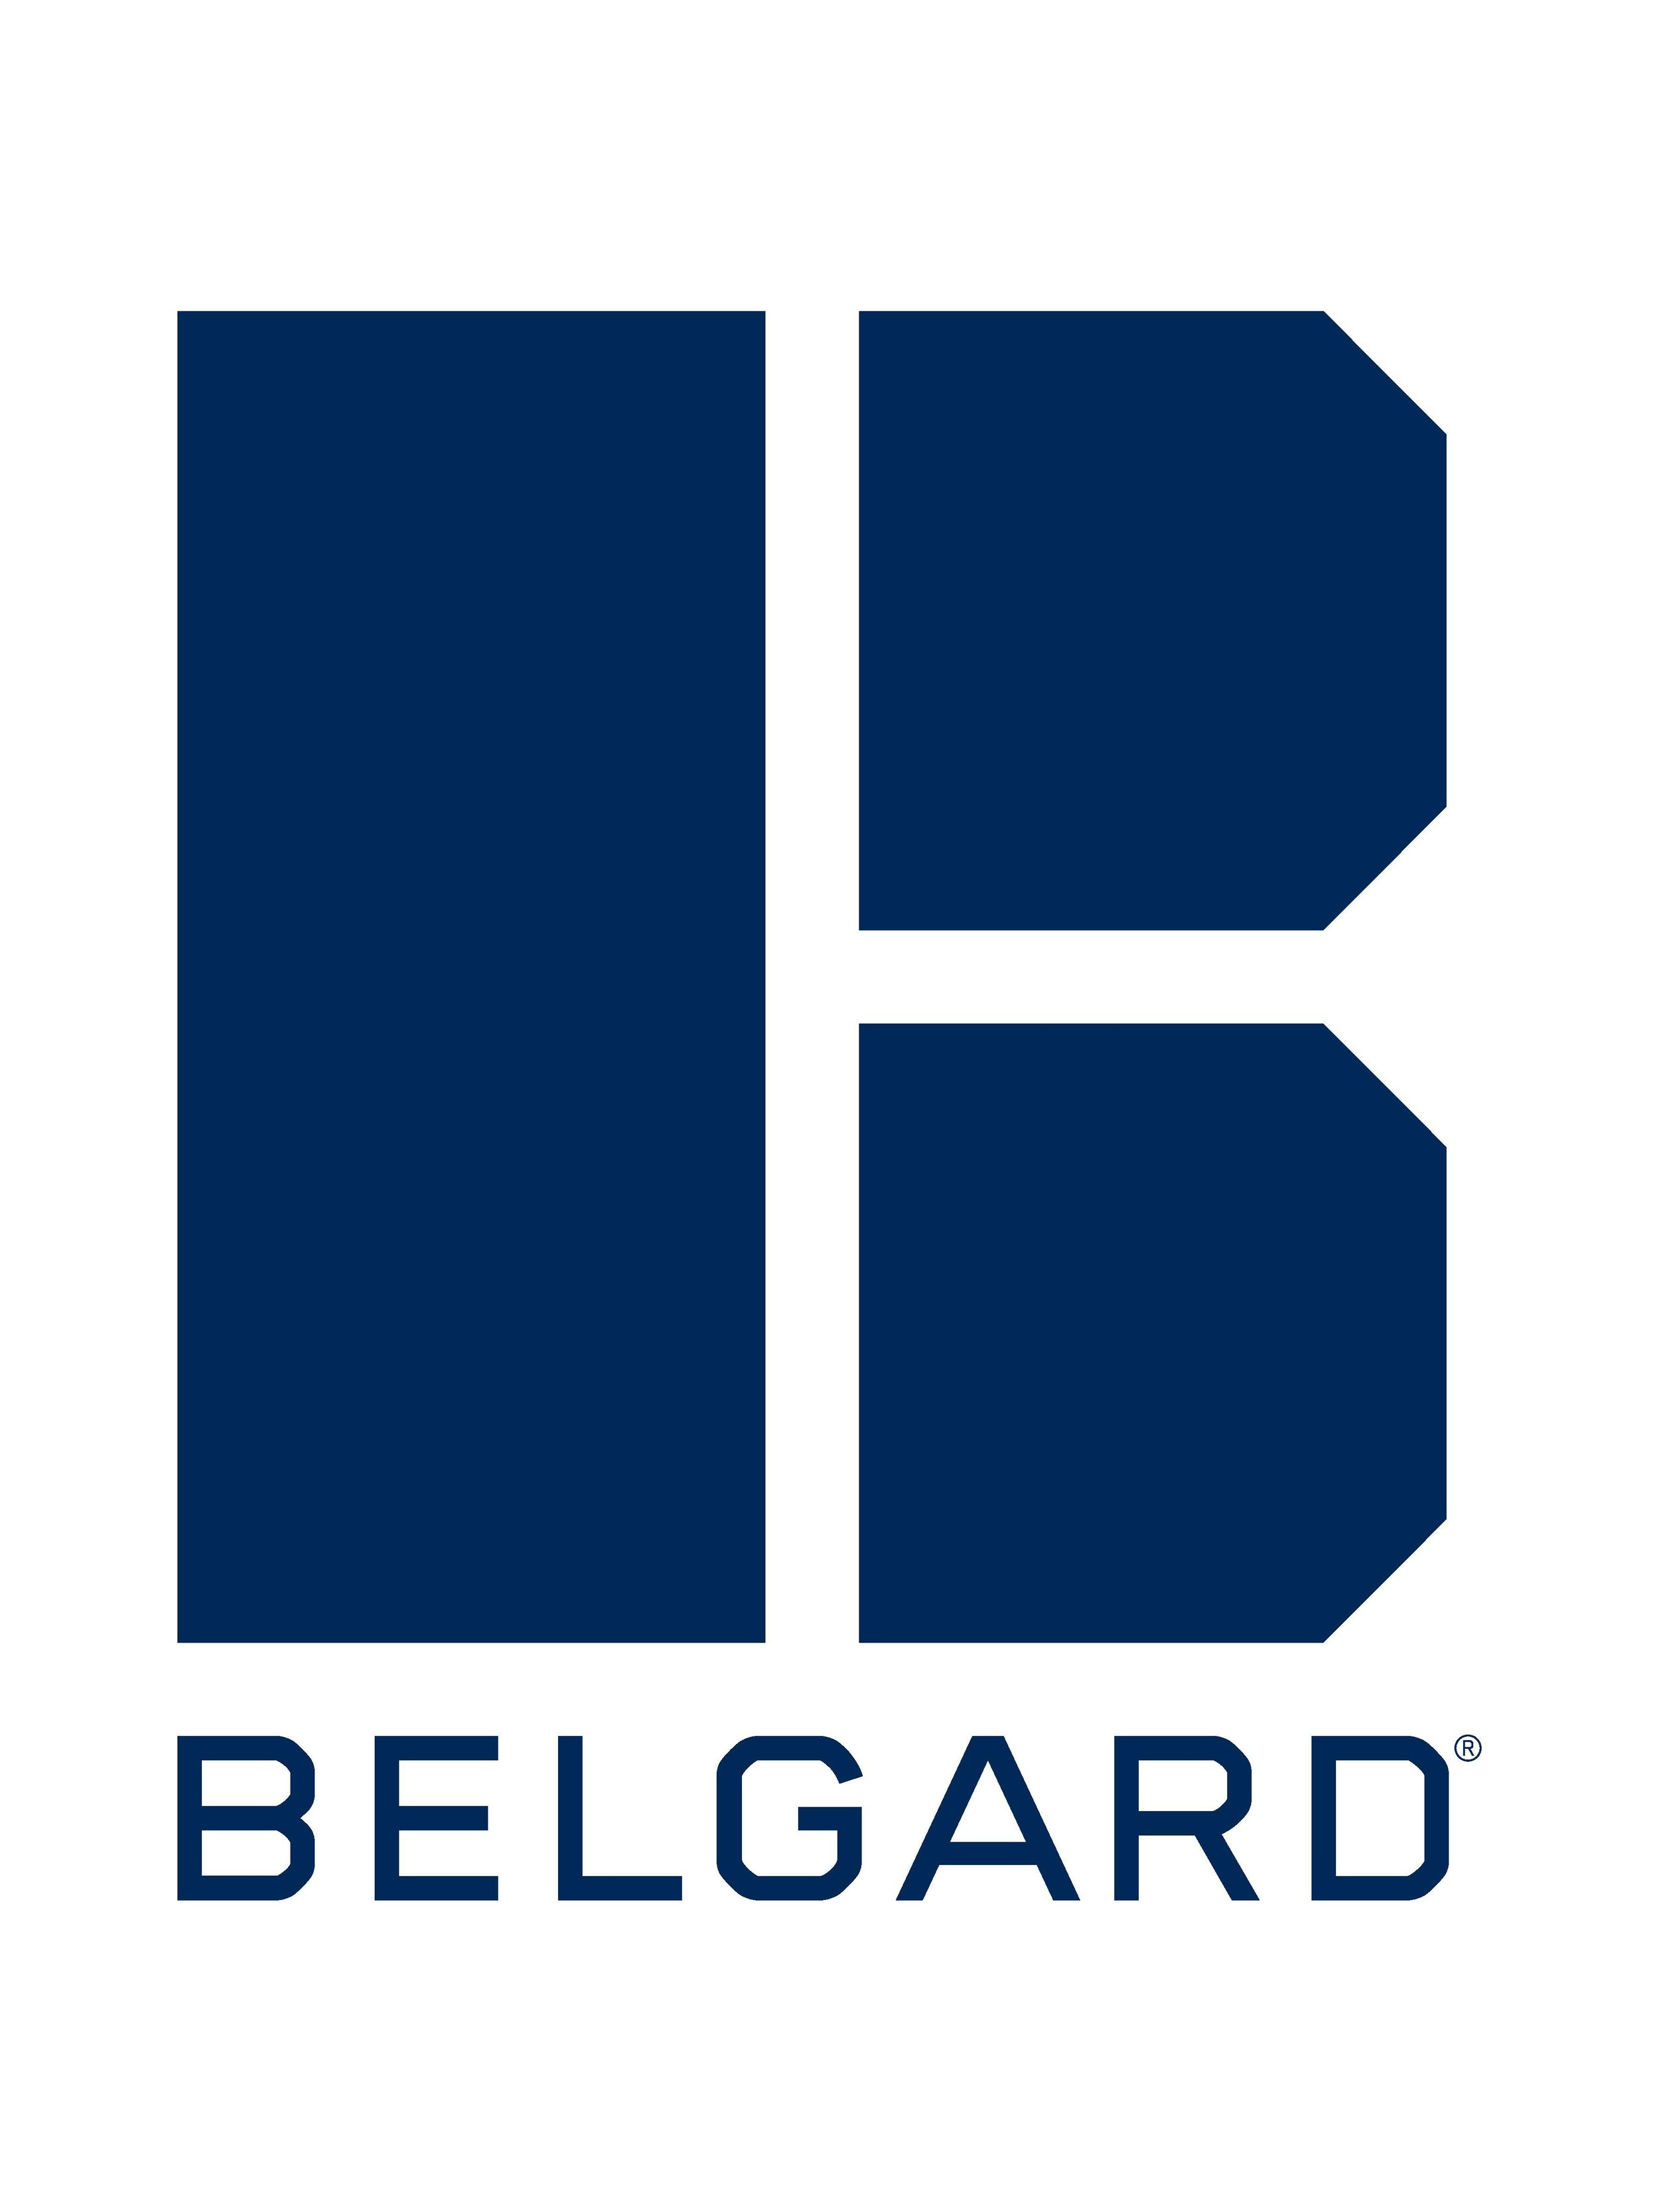 Belgard_logo_solid_PMS_navy_Big Projects.jpg